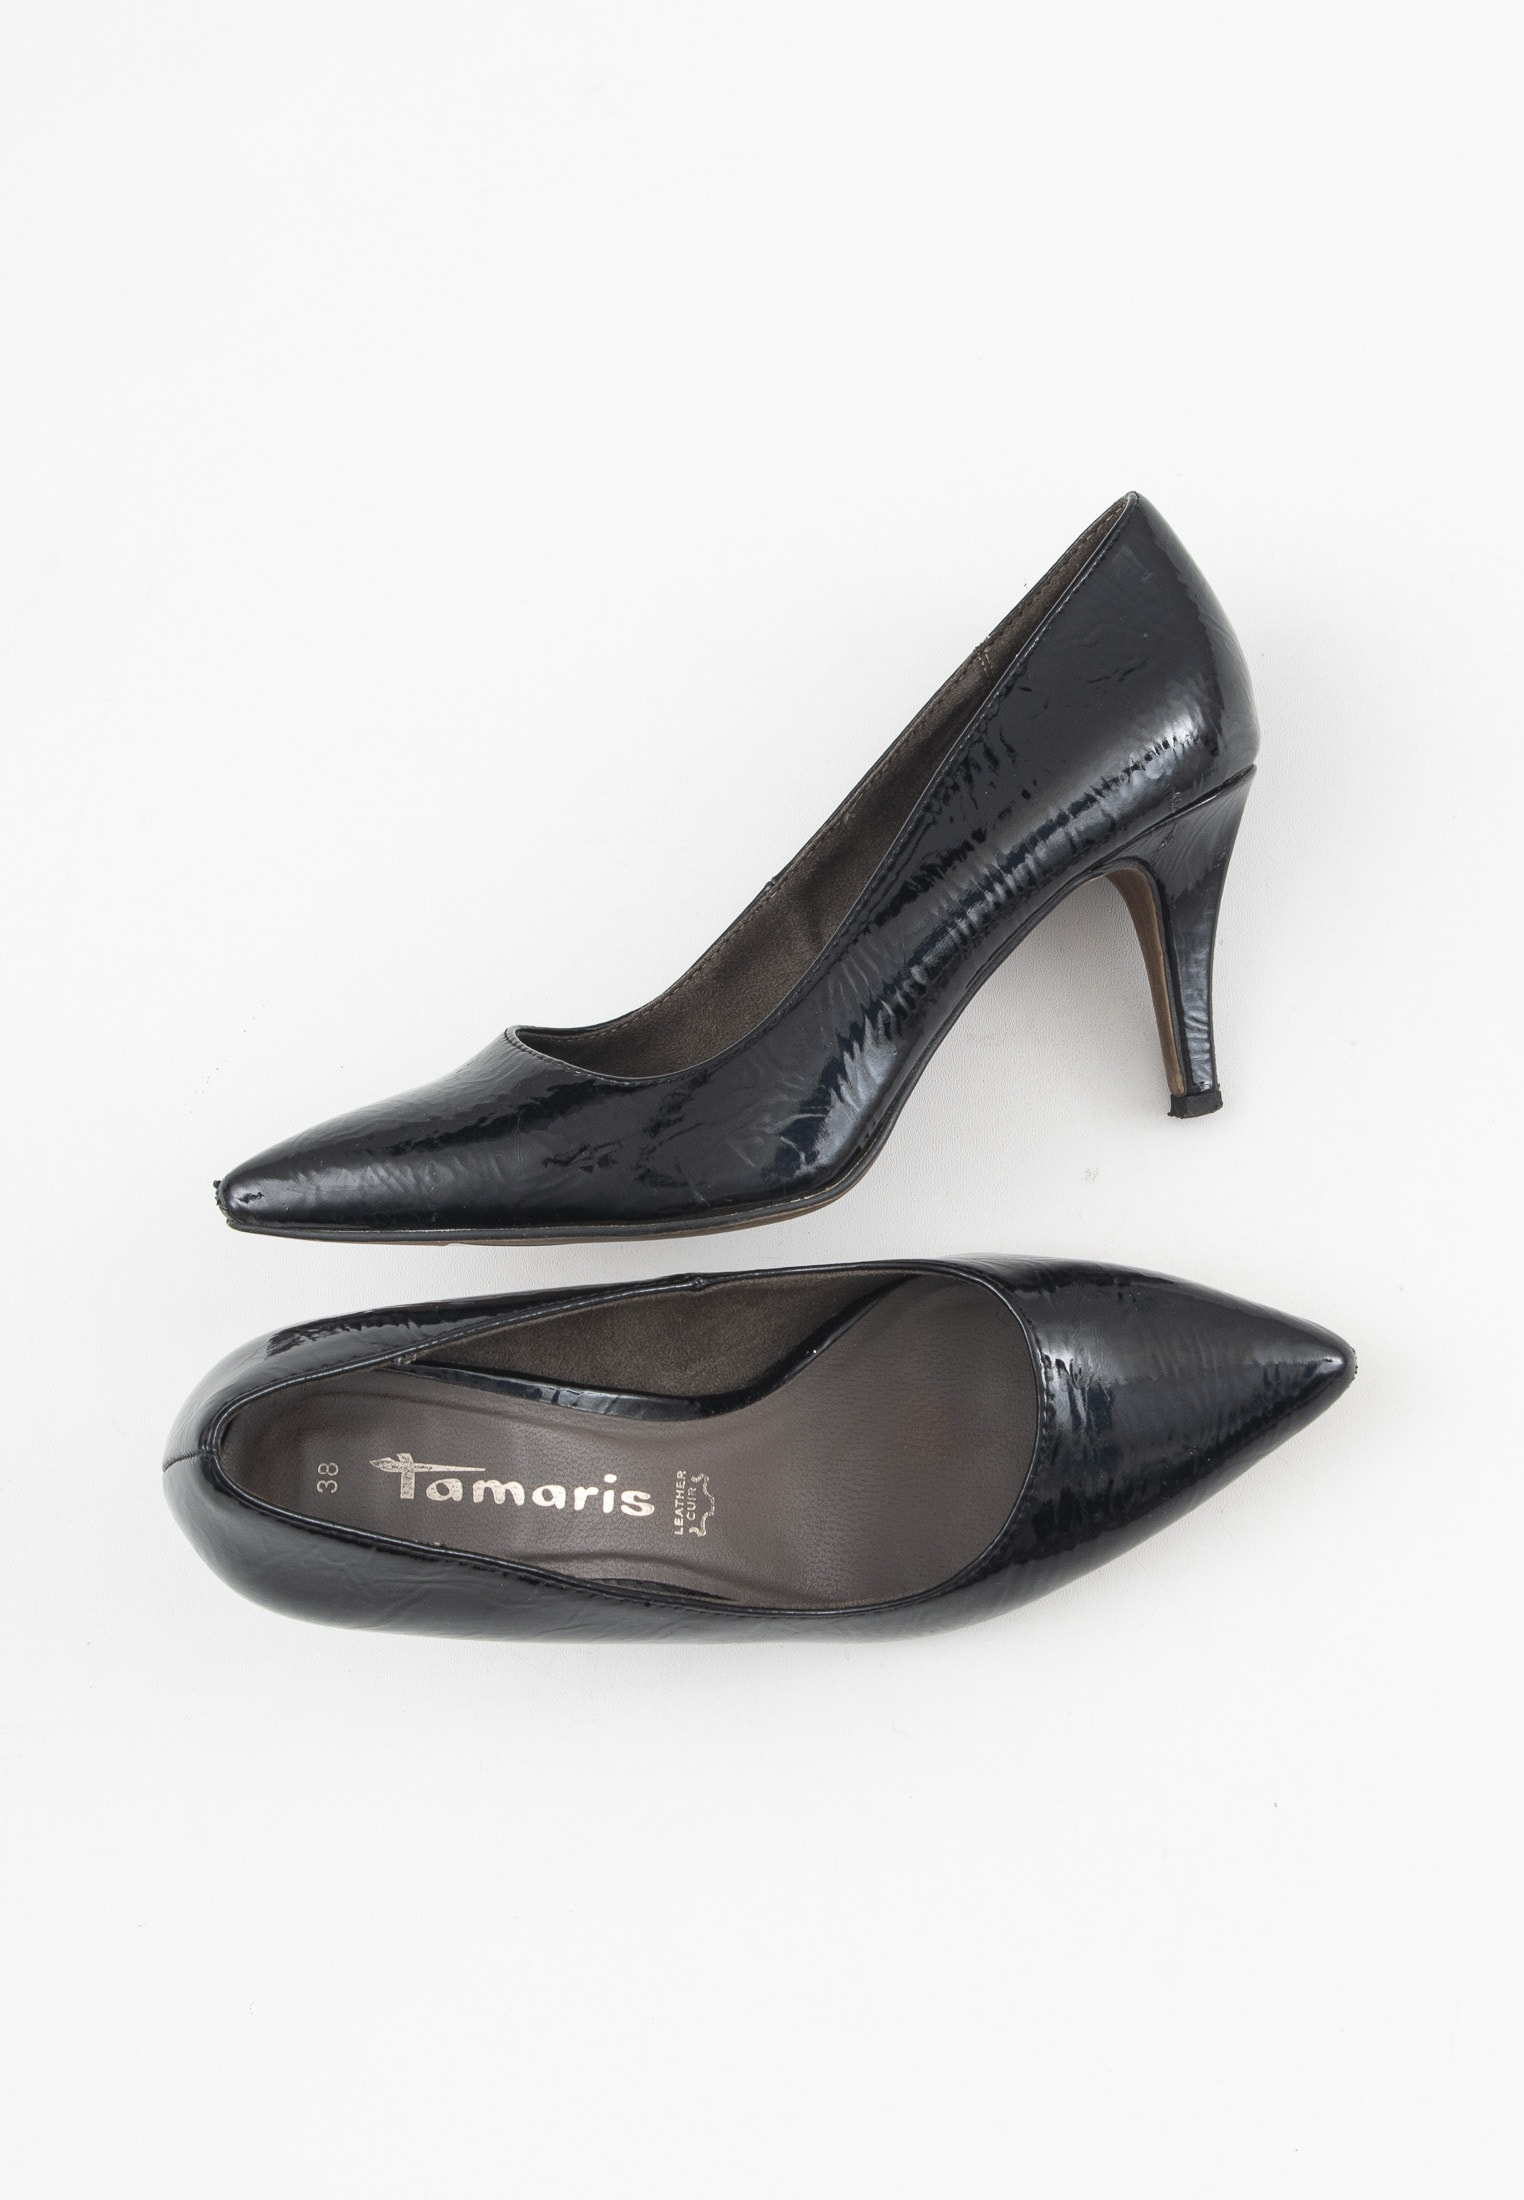 Tamaris pumps, sort, 38